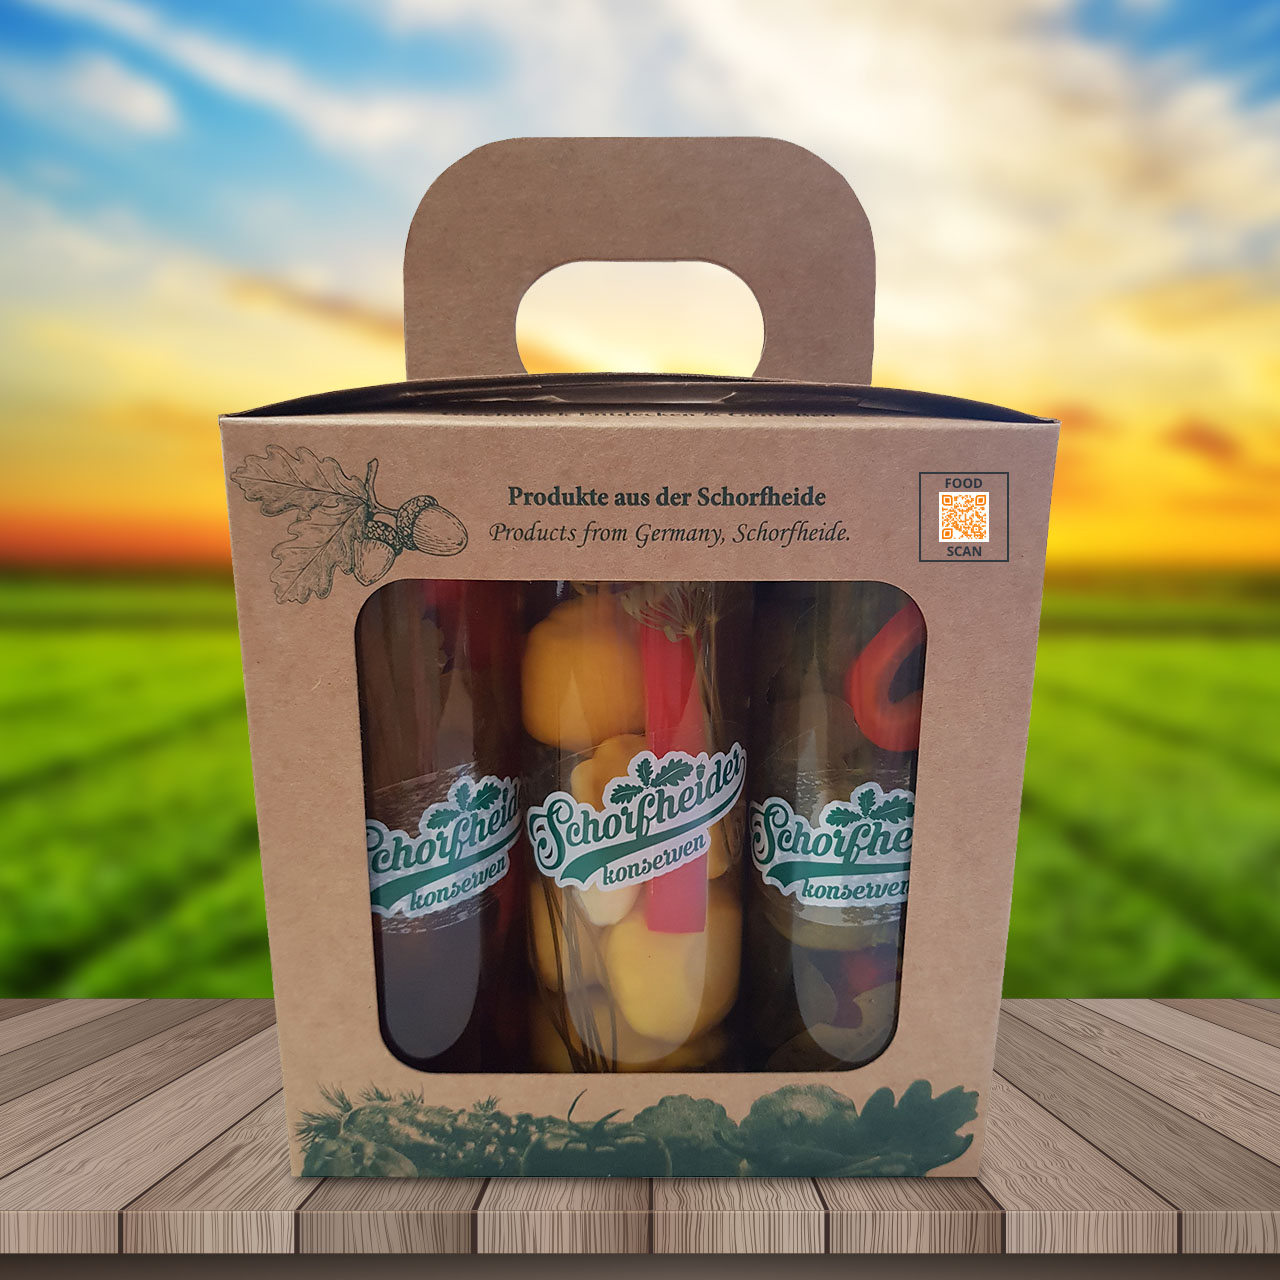 Schorfheider preserves in glass jars pack